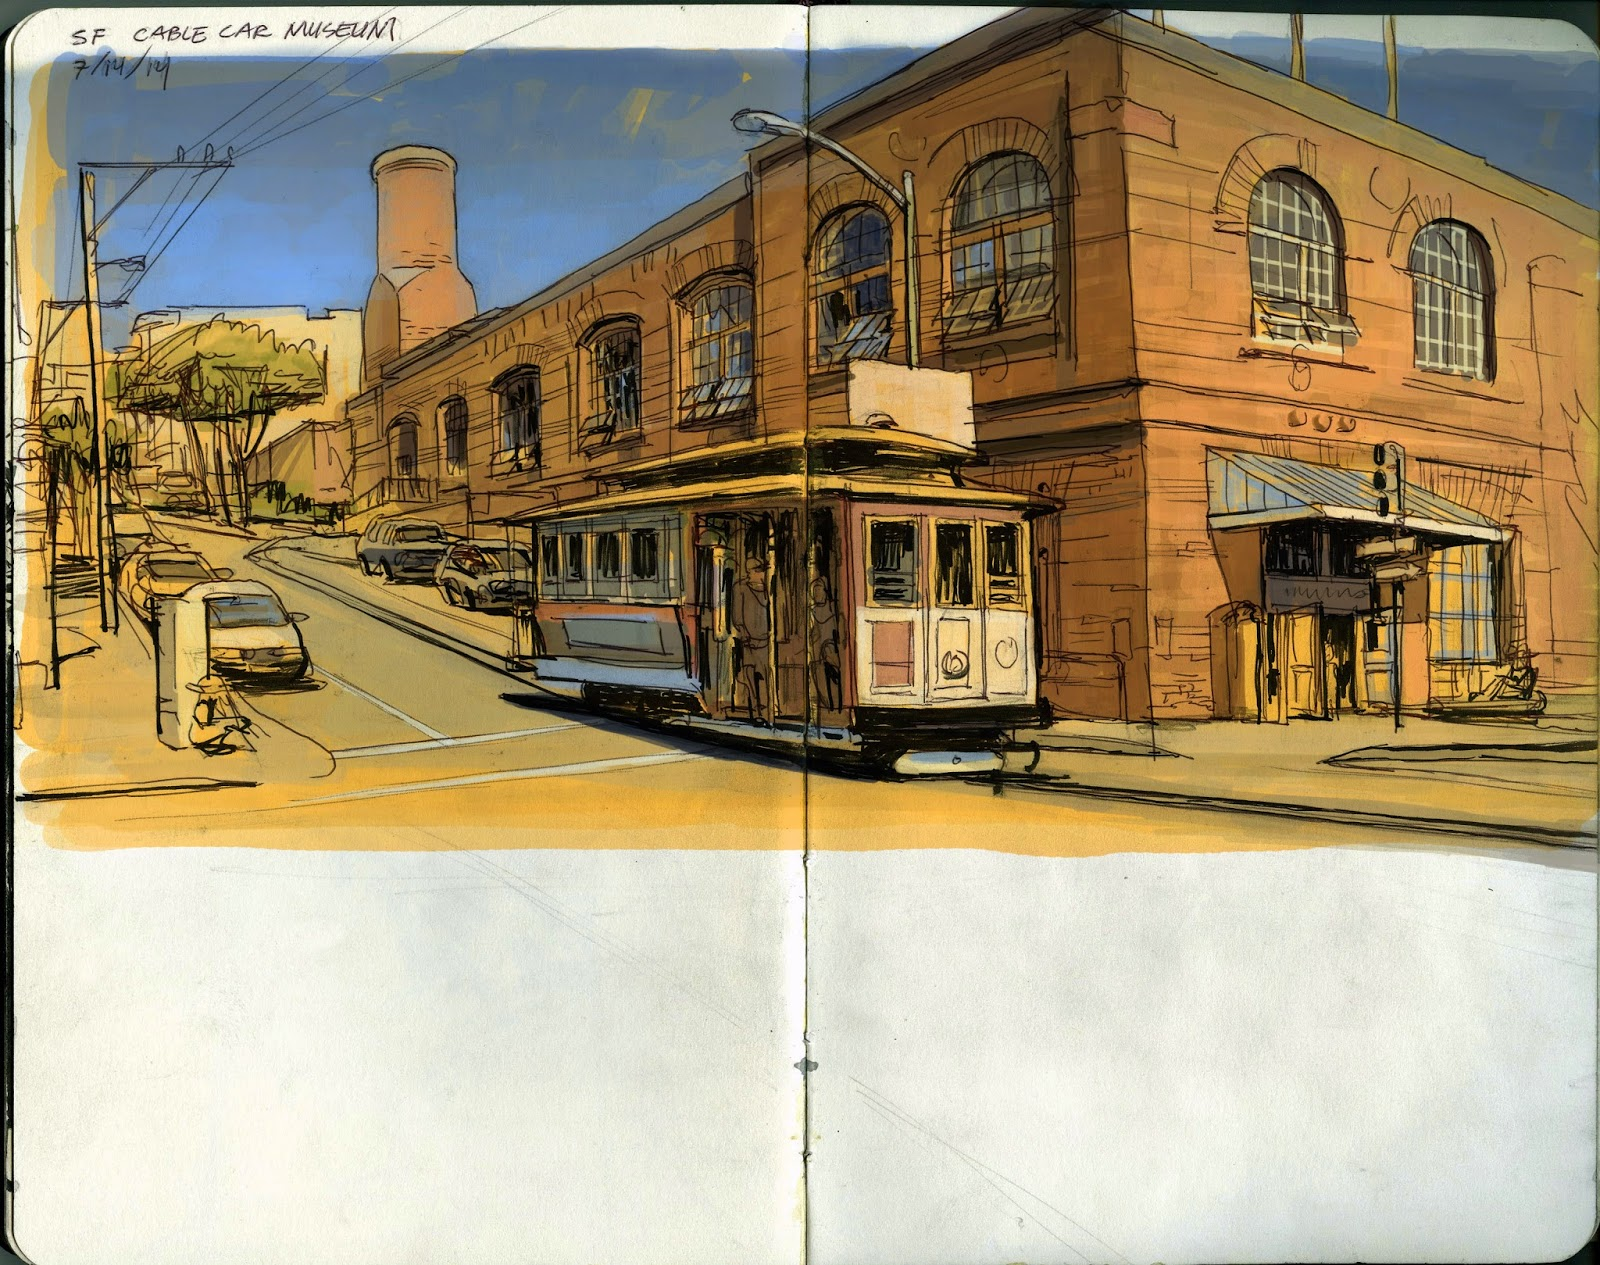 My Summer Location Drawing Class at AAU, San Francisco (Pt 9: the cable car museum)